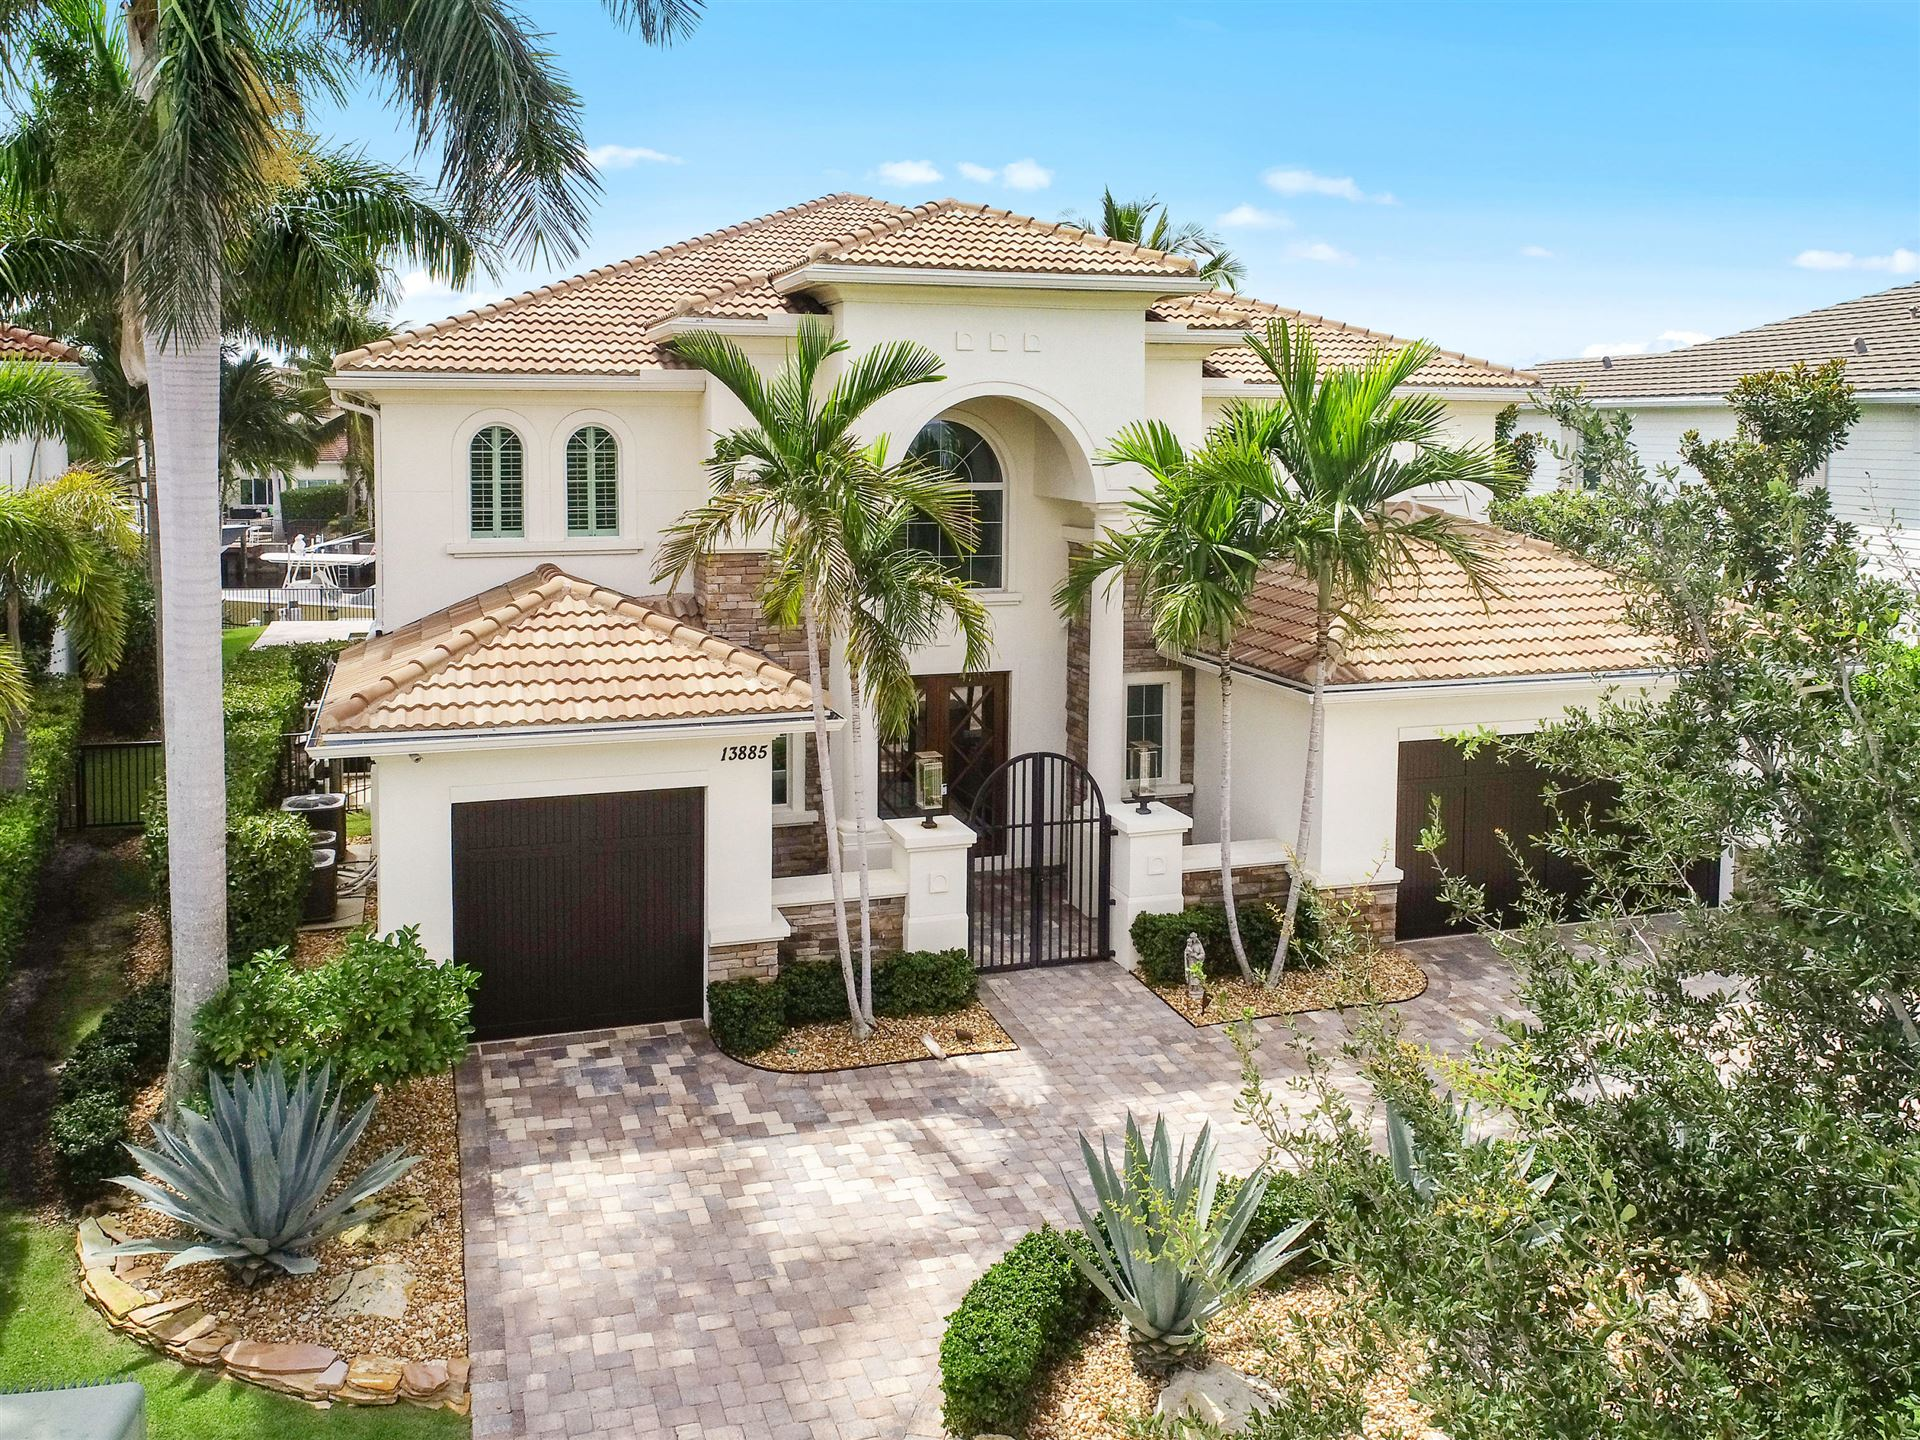 Photo of 13885 Willow Cay Drive, North Palm Beach, FL 33408 (MLS # RX-10655705)